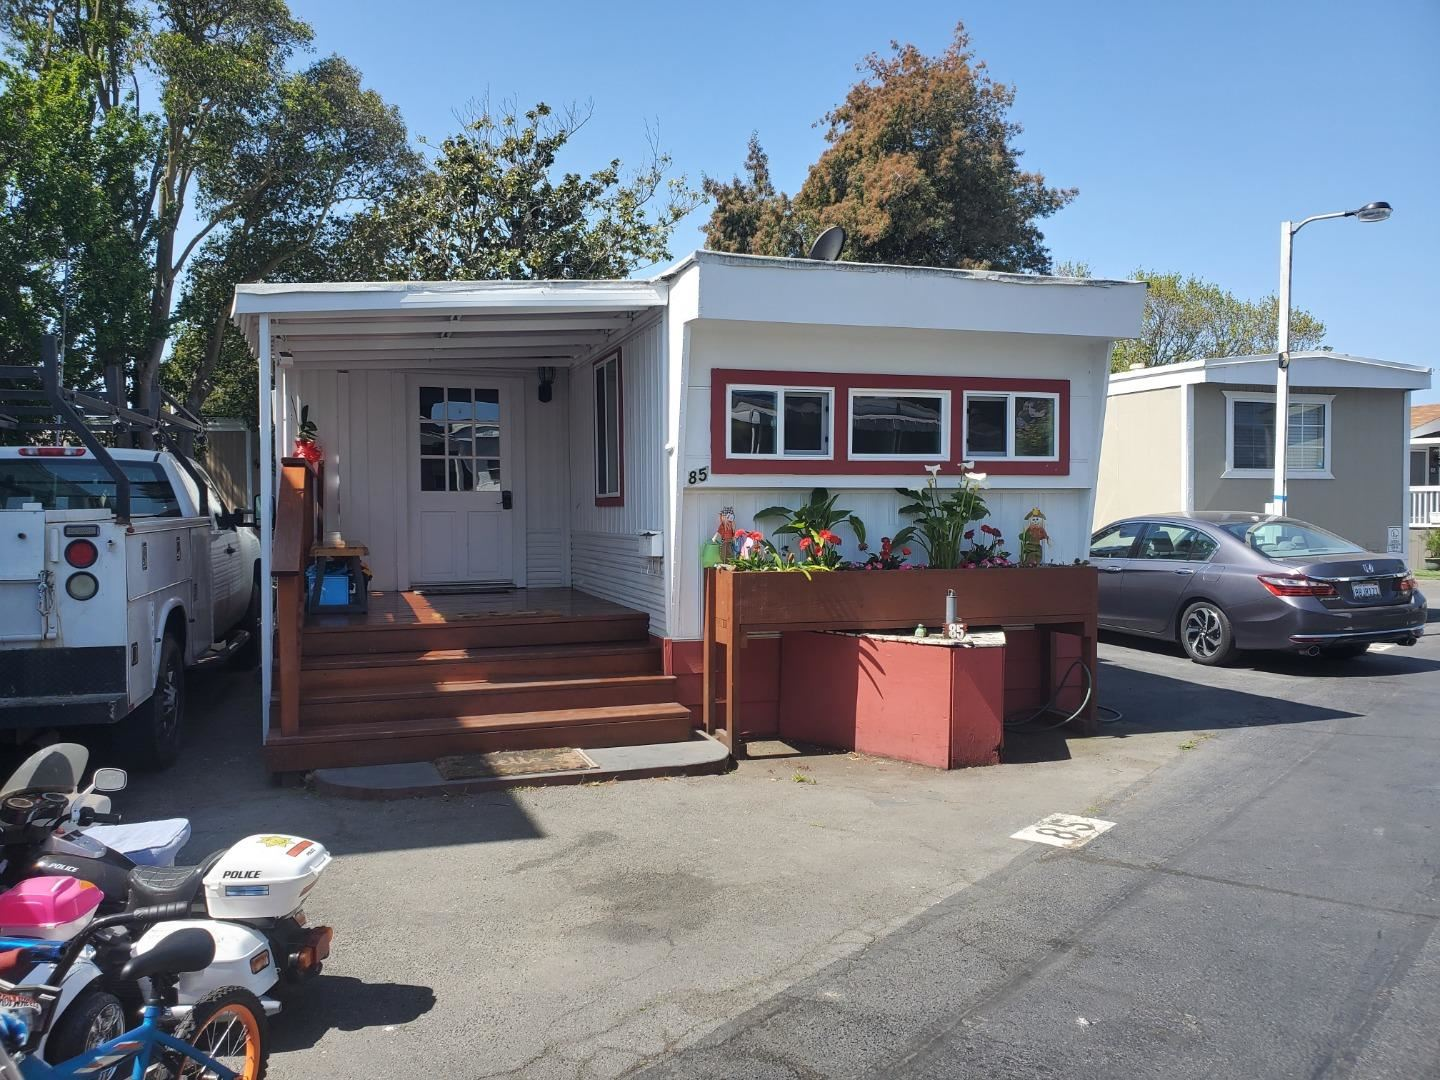 3499 East Bayshore Road, Redwood City, CA 94063 - #: ML81840752